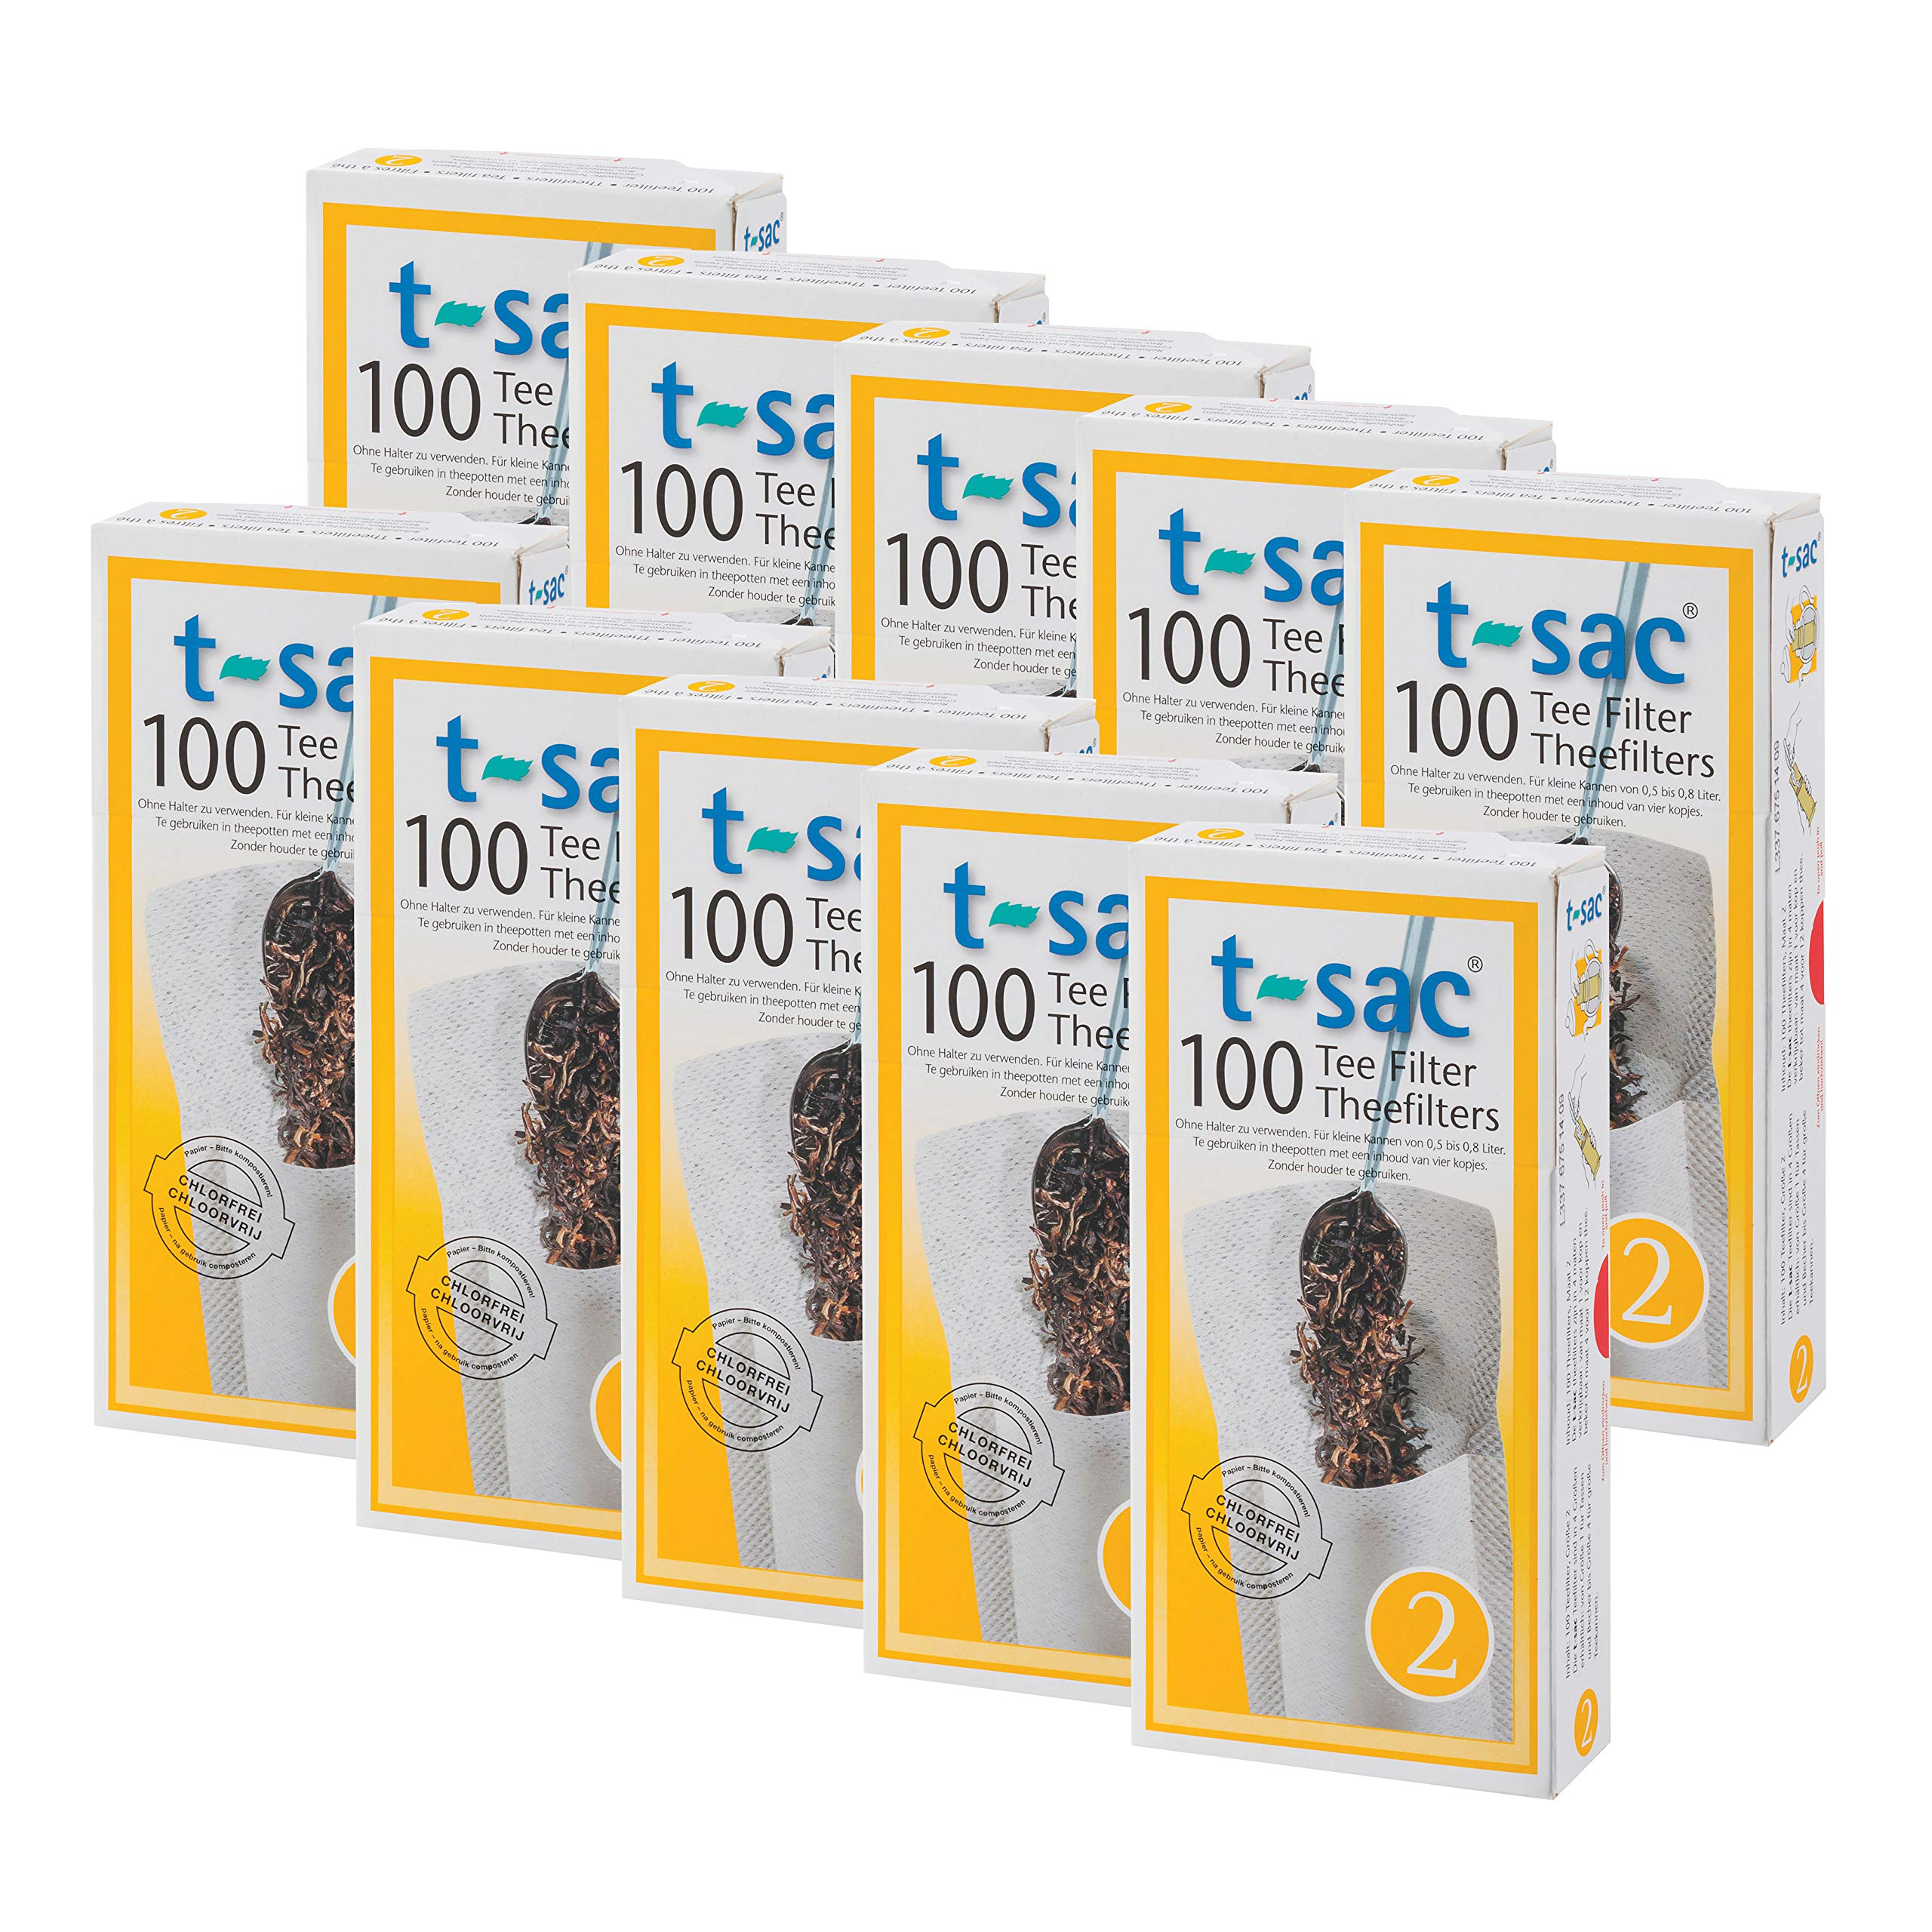 T-Sac Tea Filter Bags, Disposable Tea Infuser, Number 2-Size, 2 to 4-Cup Capacity, Set of 1,000 by T-Sac